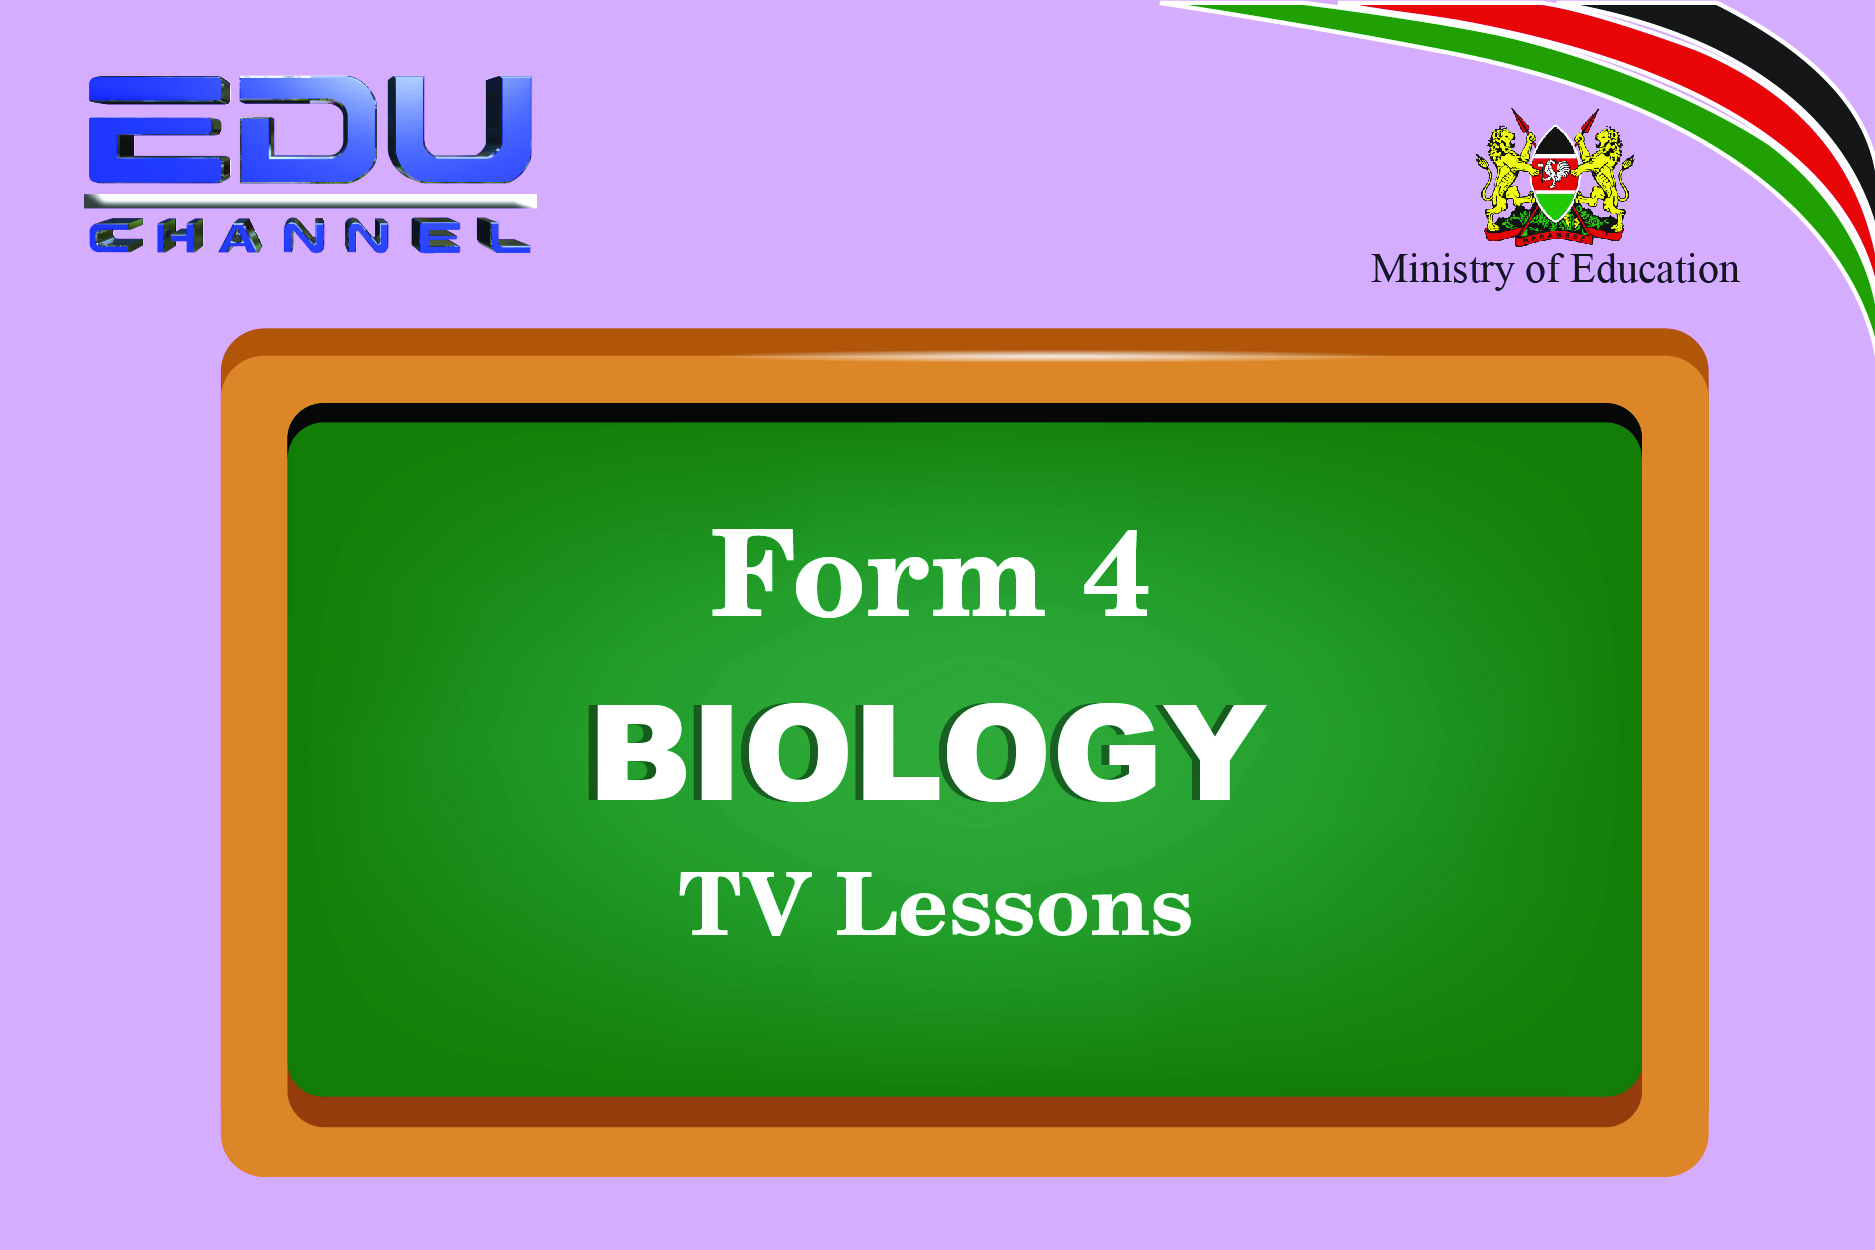 Form 4 Biology Lesson 8:Reception Response and Coordination - Reflex action